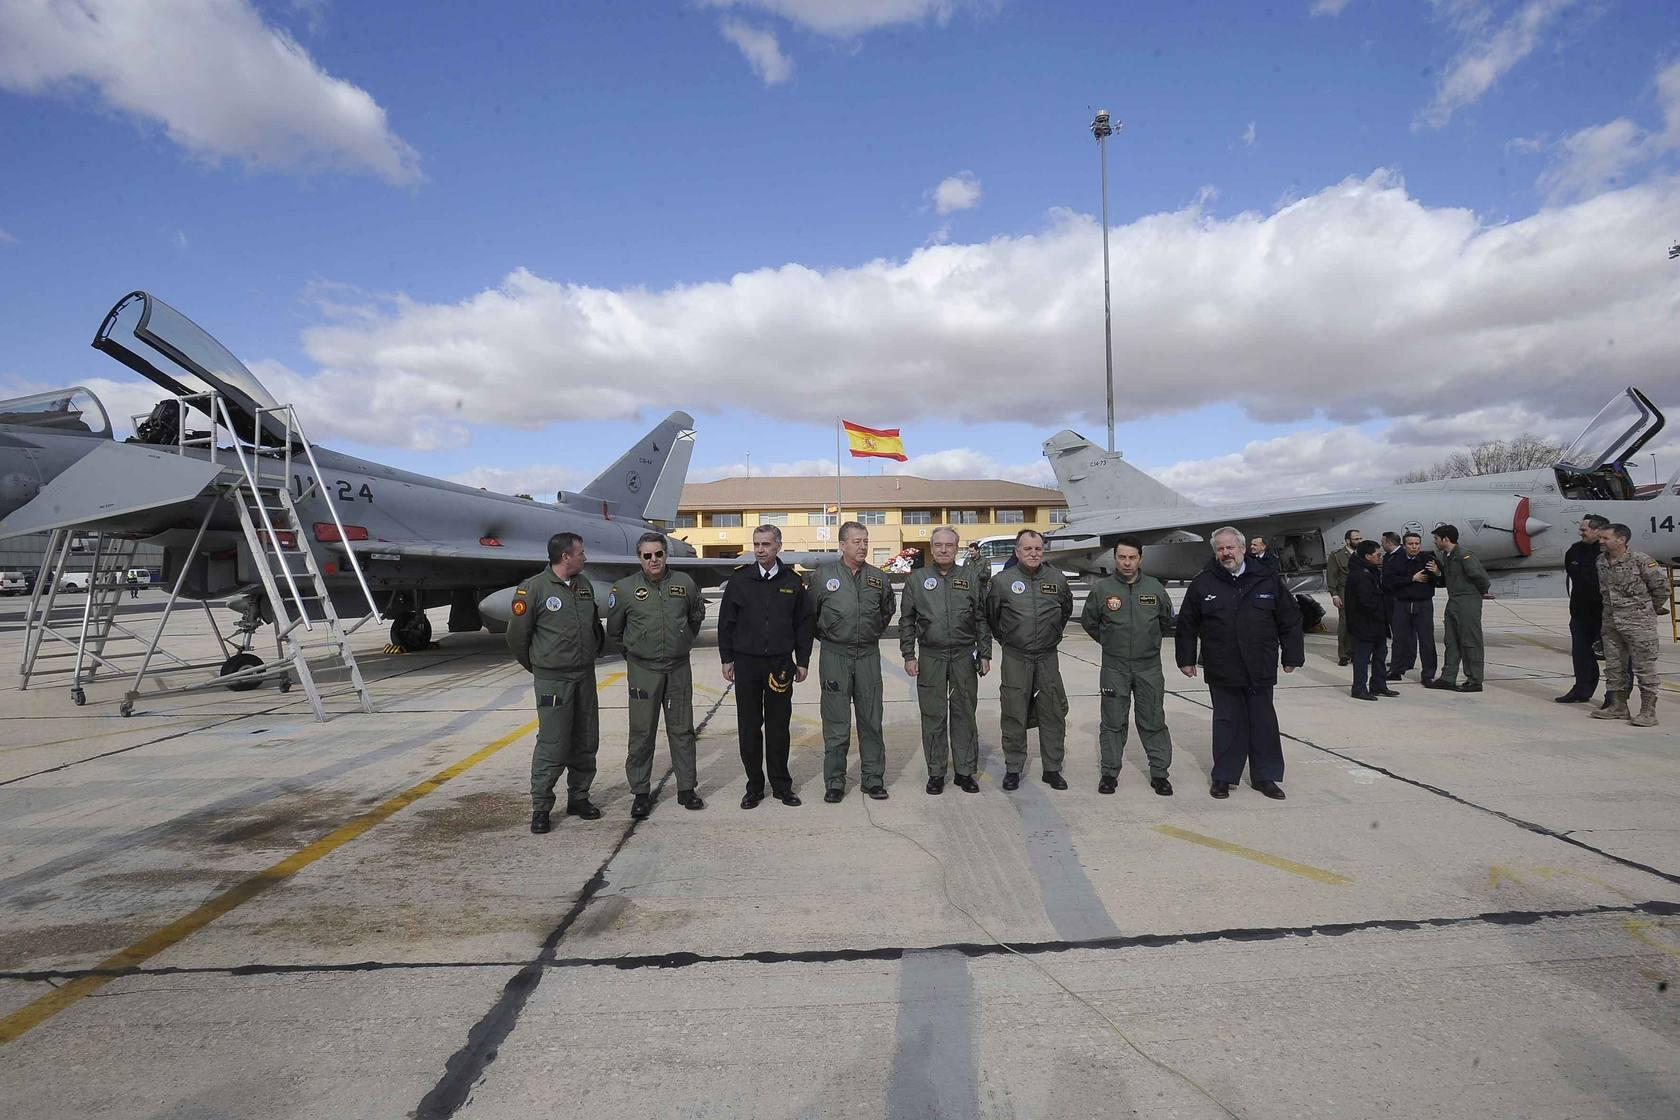 El jefe del Estado Mayor de Defensa visita la Base Aérea de Albacete